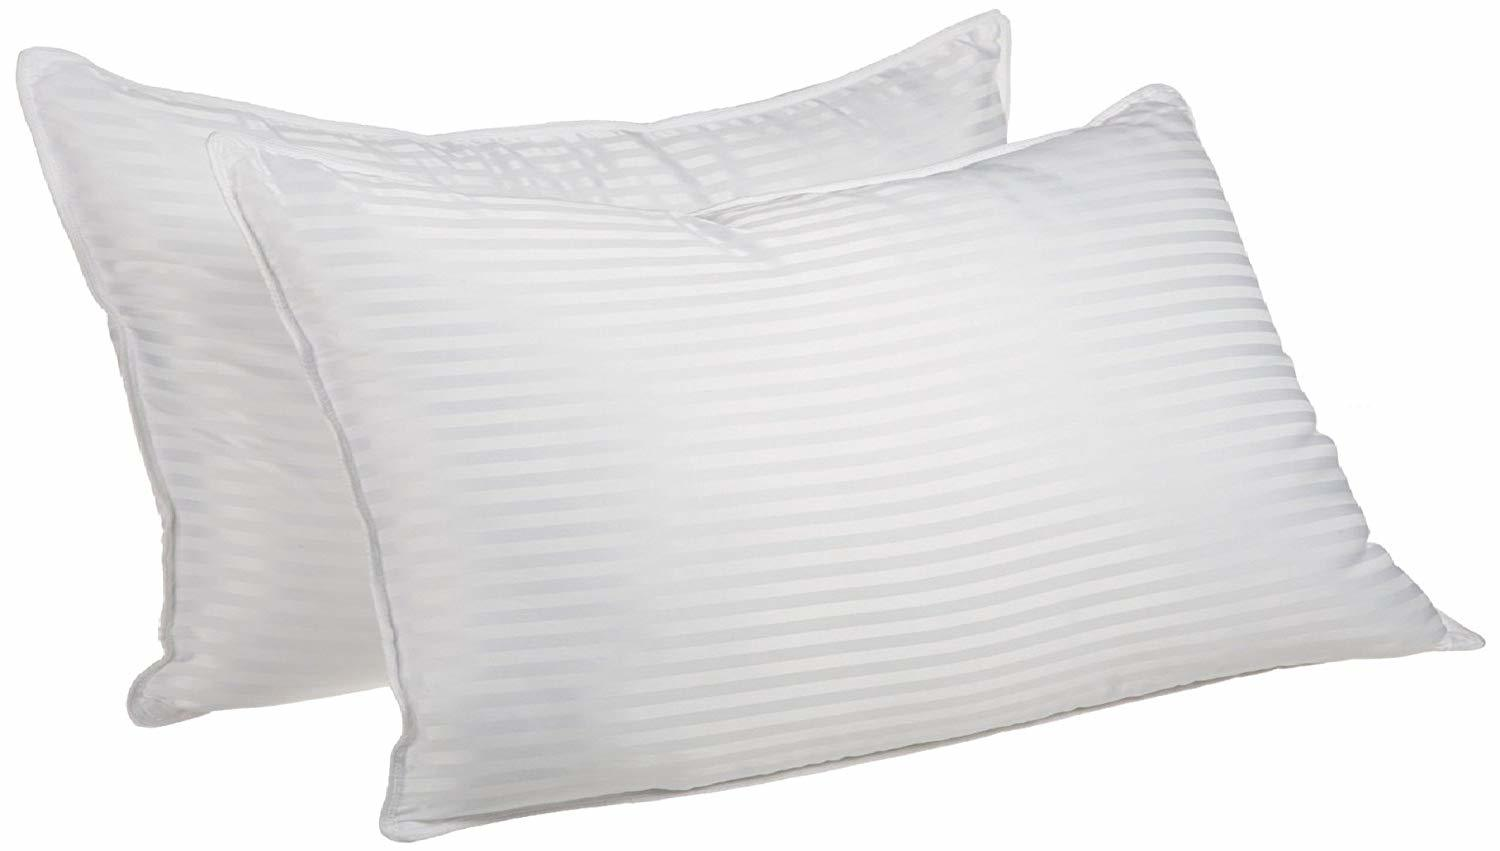 Superior White Down Alternative Pillow 2-Pack